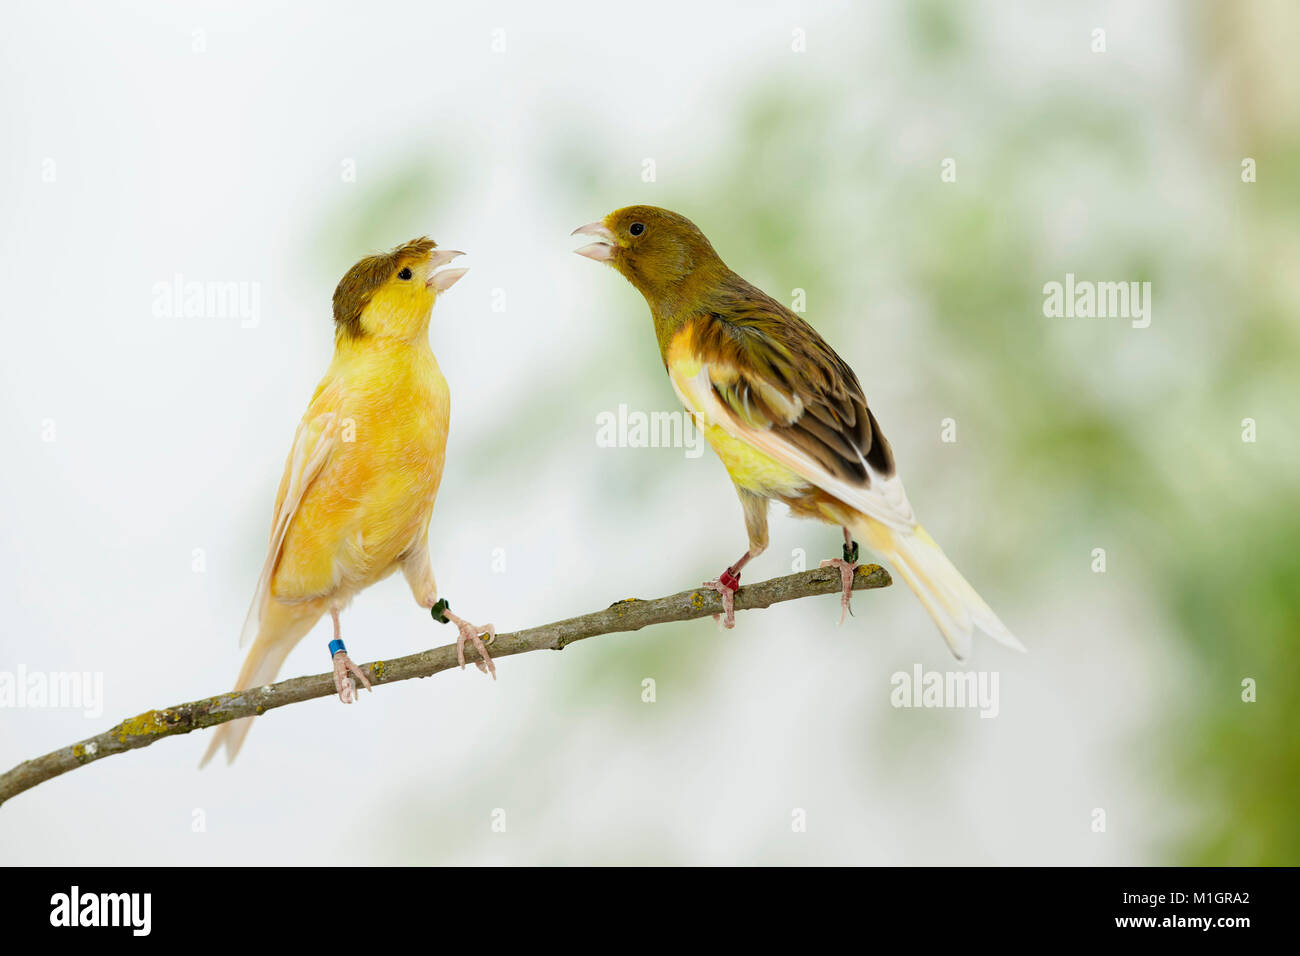 Domestic canary. Two birds of different colour perched on a twig while arguing. Germany - Stock Image